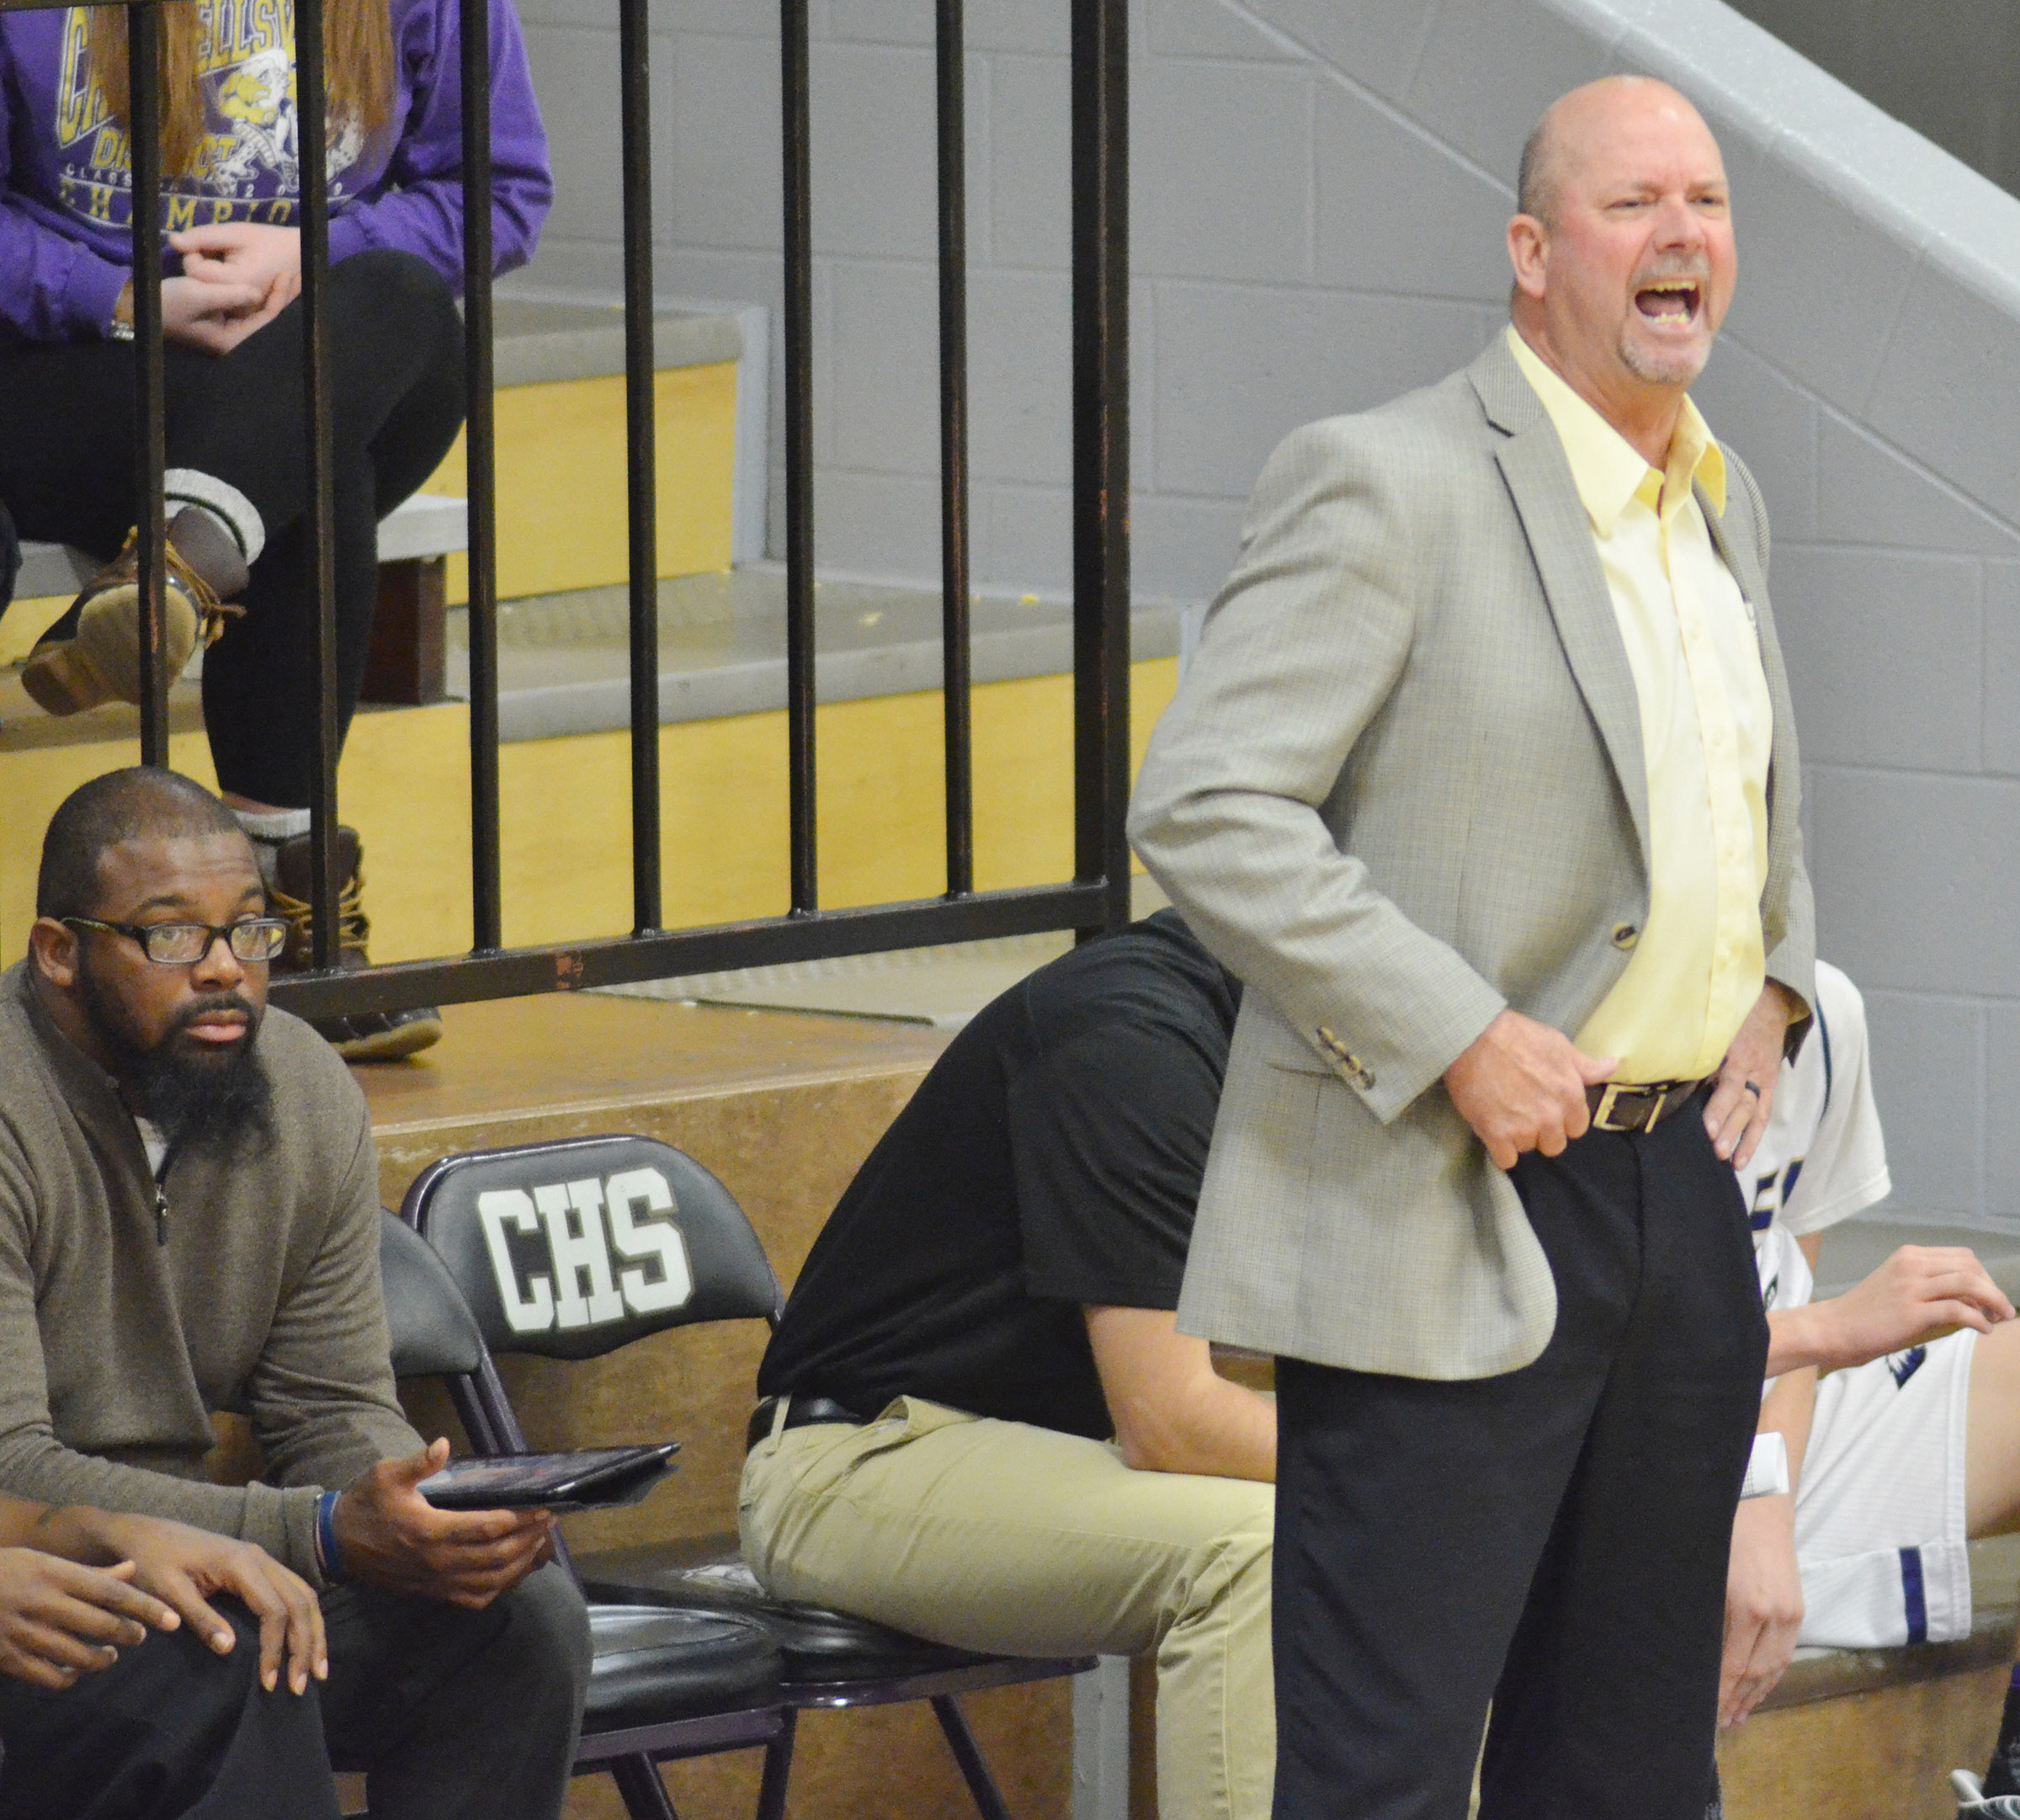 CHS head boys' basketball coach Tim Davis yells to his players.